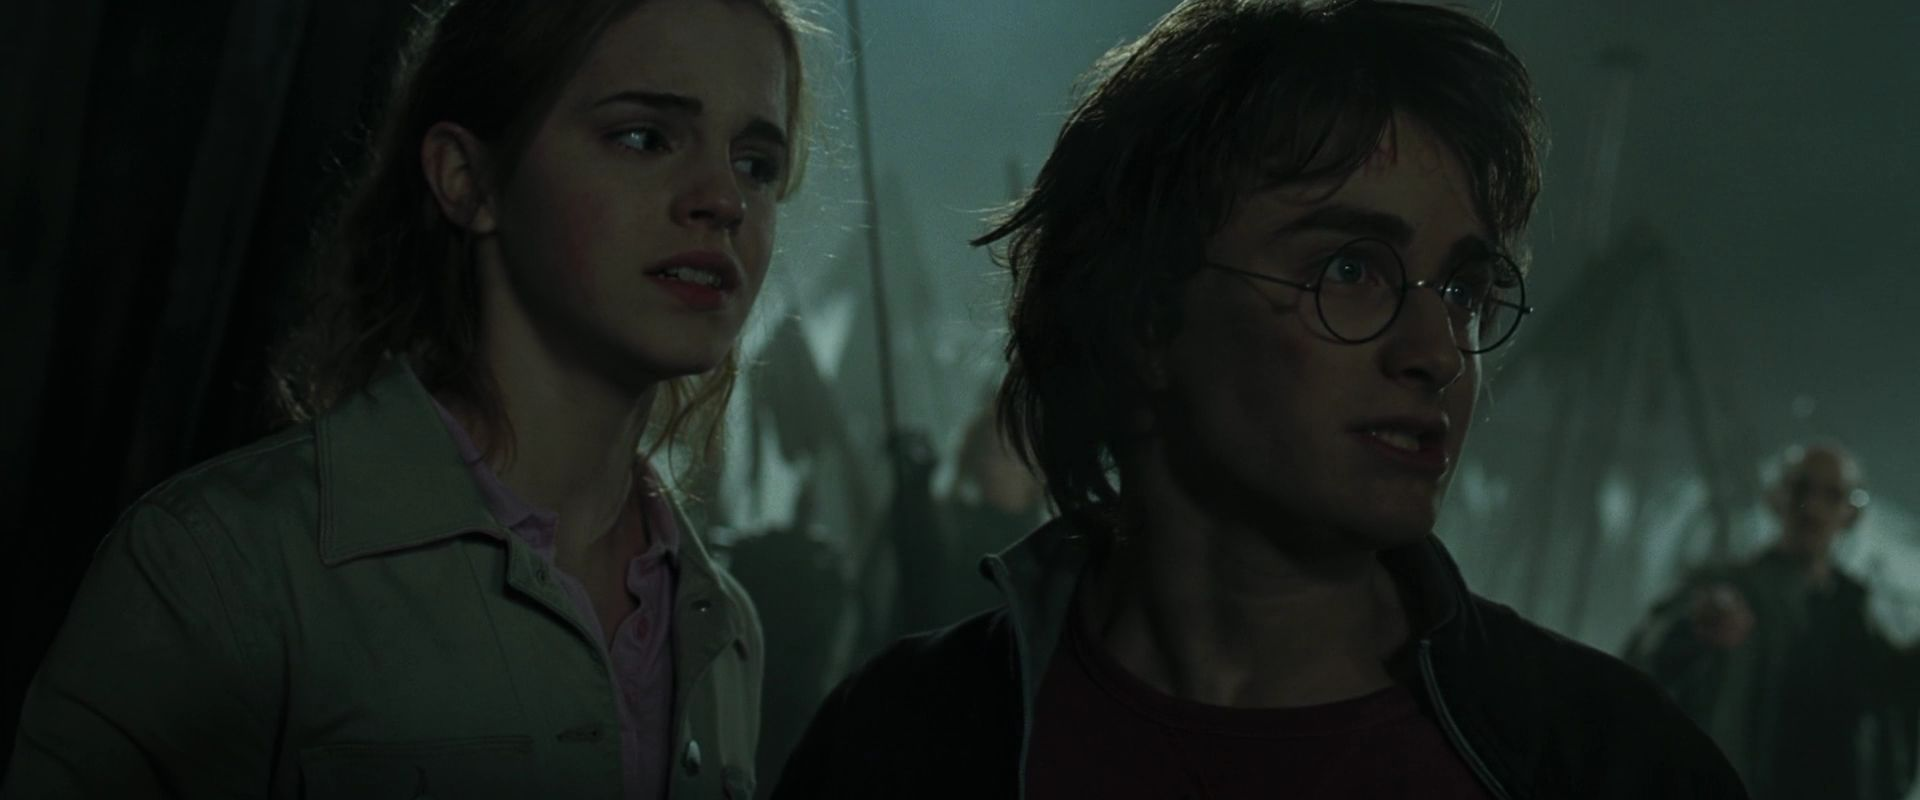 harry potter and the goblet of fire essay questions Harry potter and the goblet of fire is a 2005 fantasy film directed by mike newell  and  among these was the first edition of harry potter scene it containing  over 1,000 questions  see templates for discussion to help reach a consensus  .